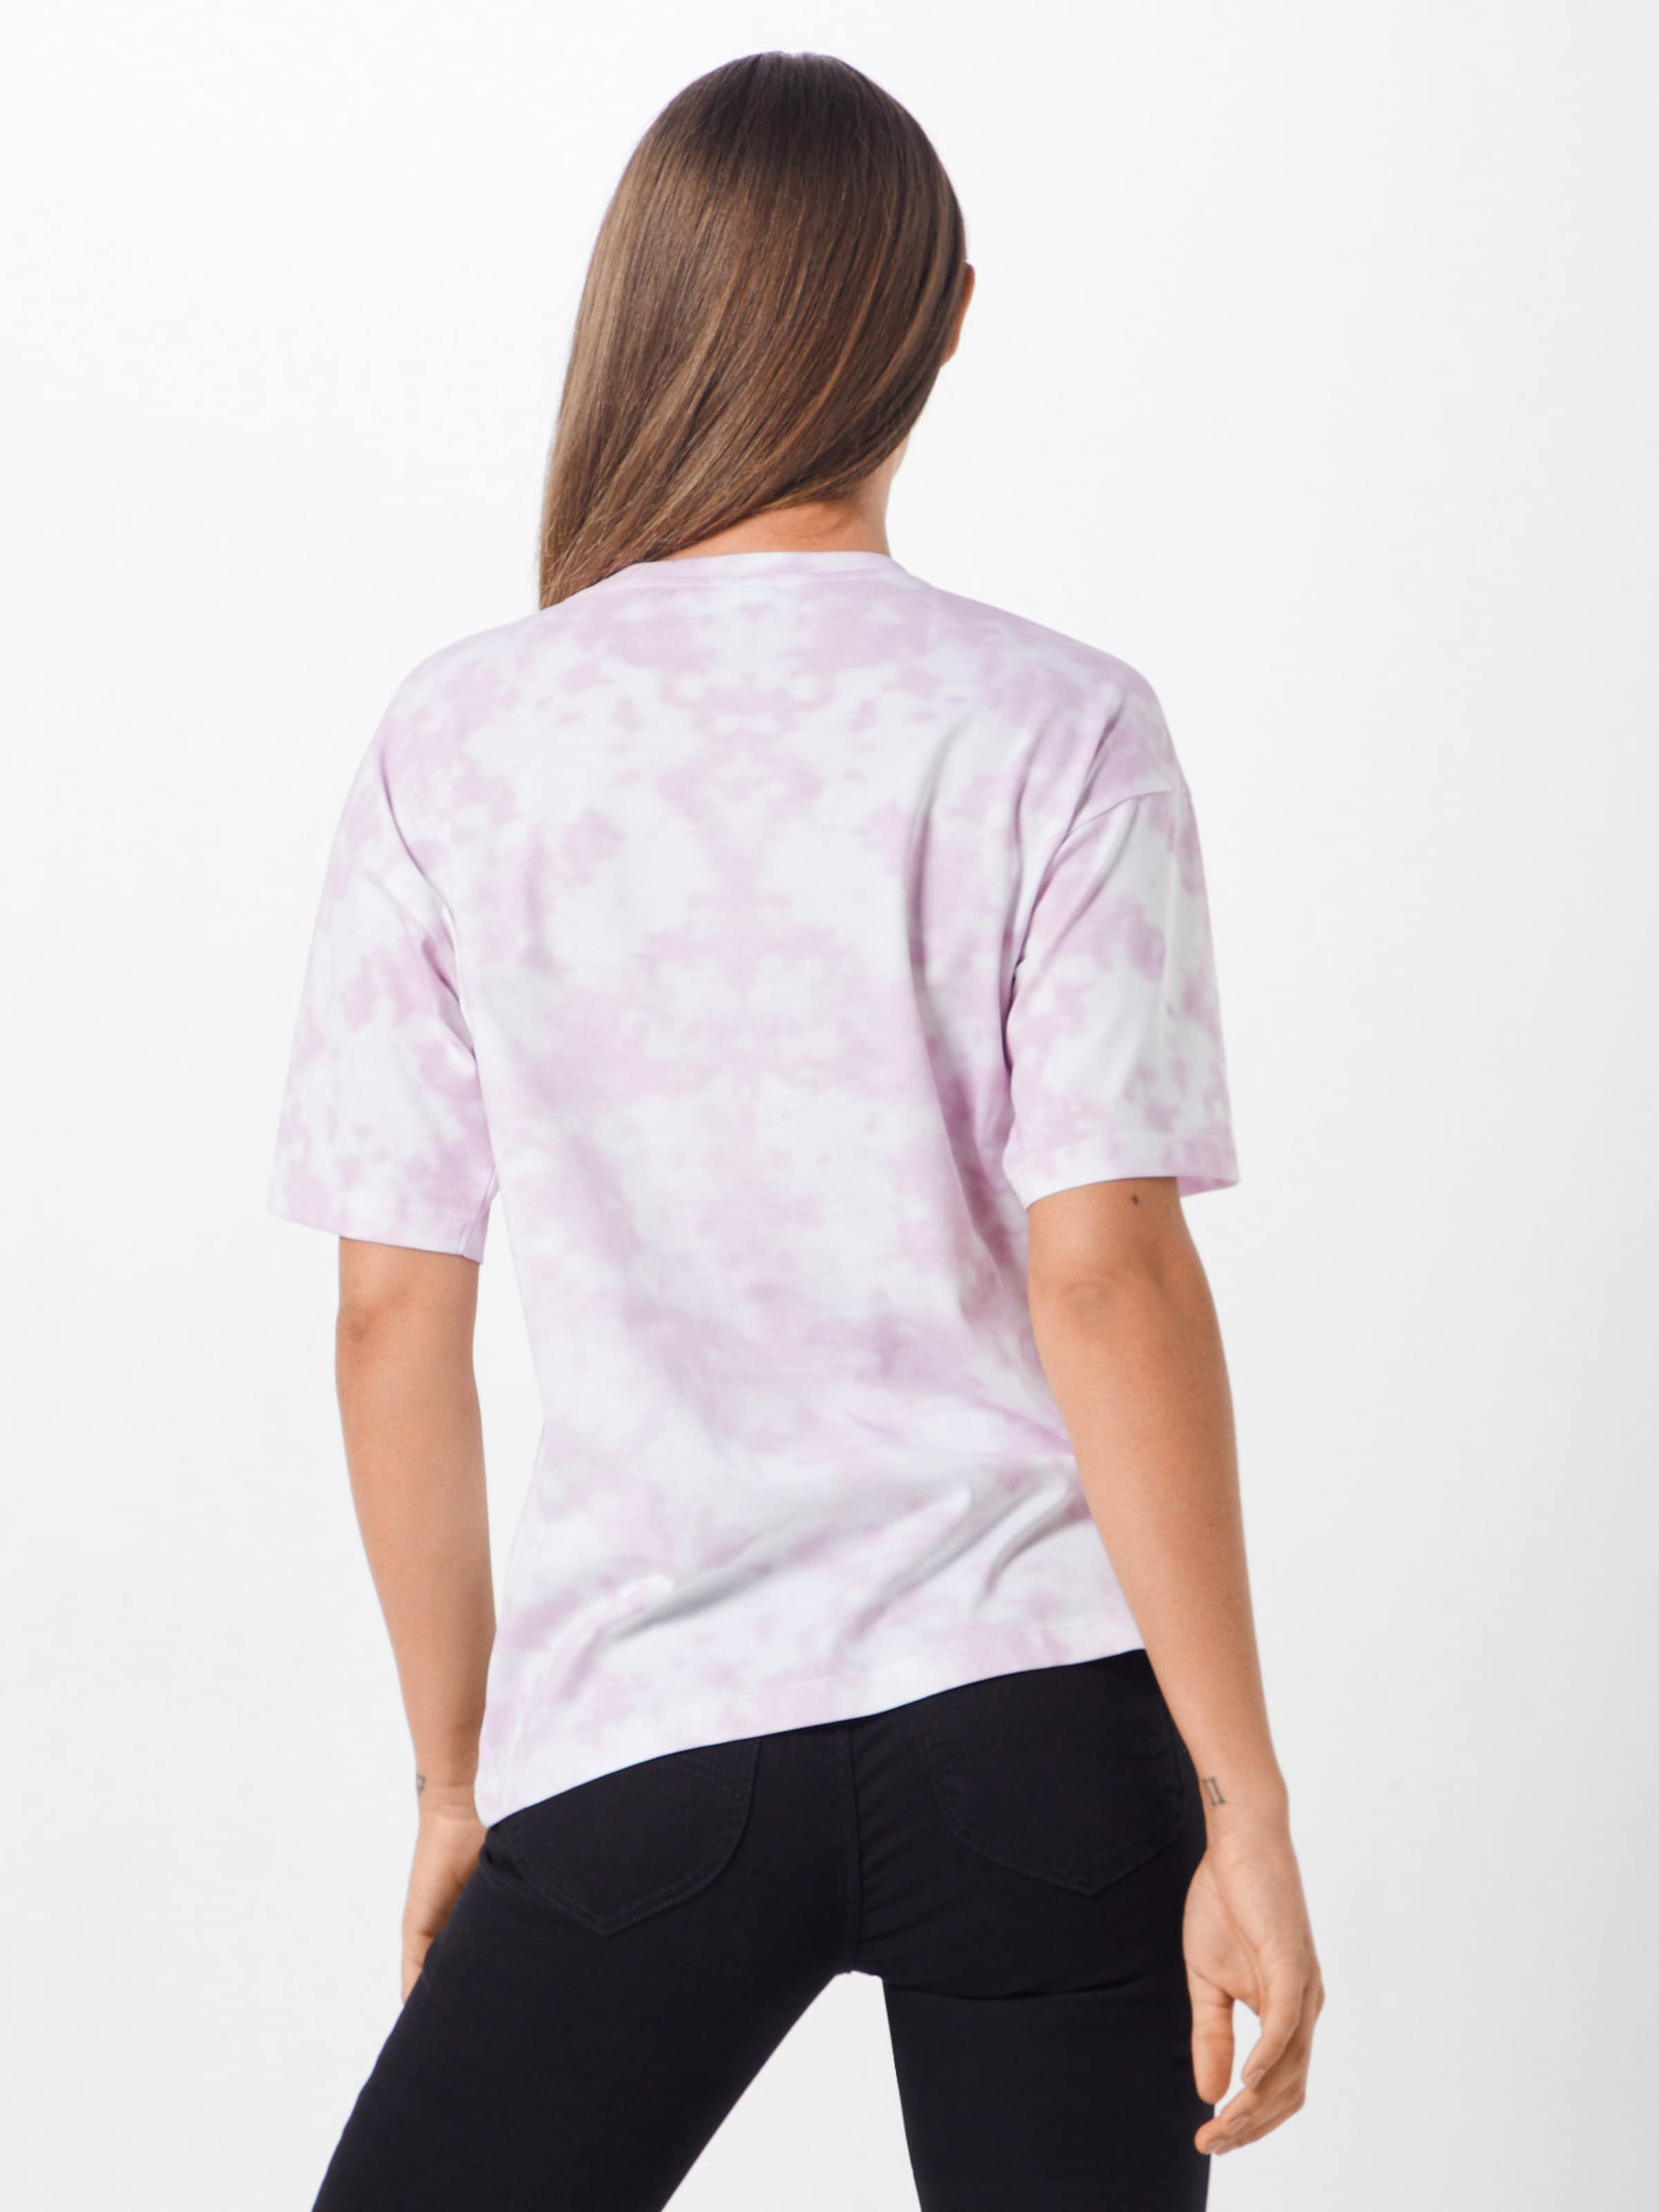 shirt Moves En T T T Moves Rose shirt En Rose Moves shirt 5c34qRjAL